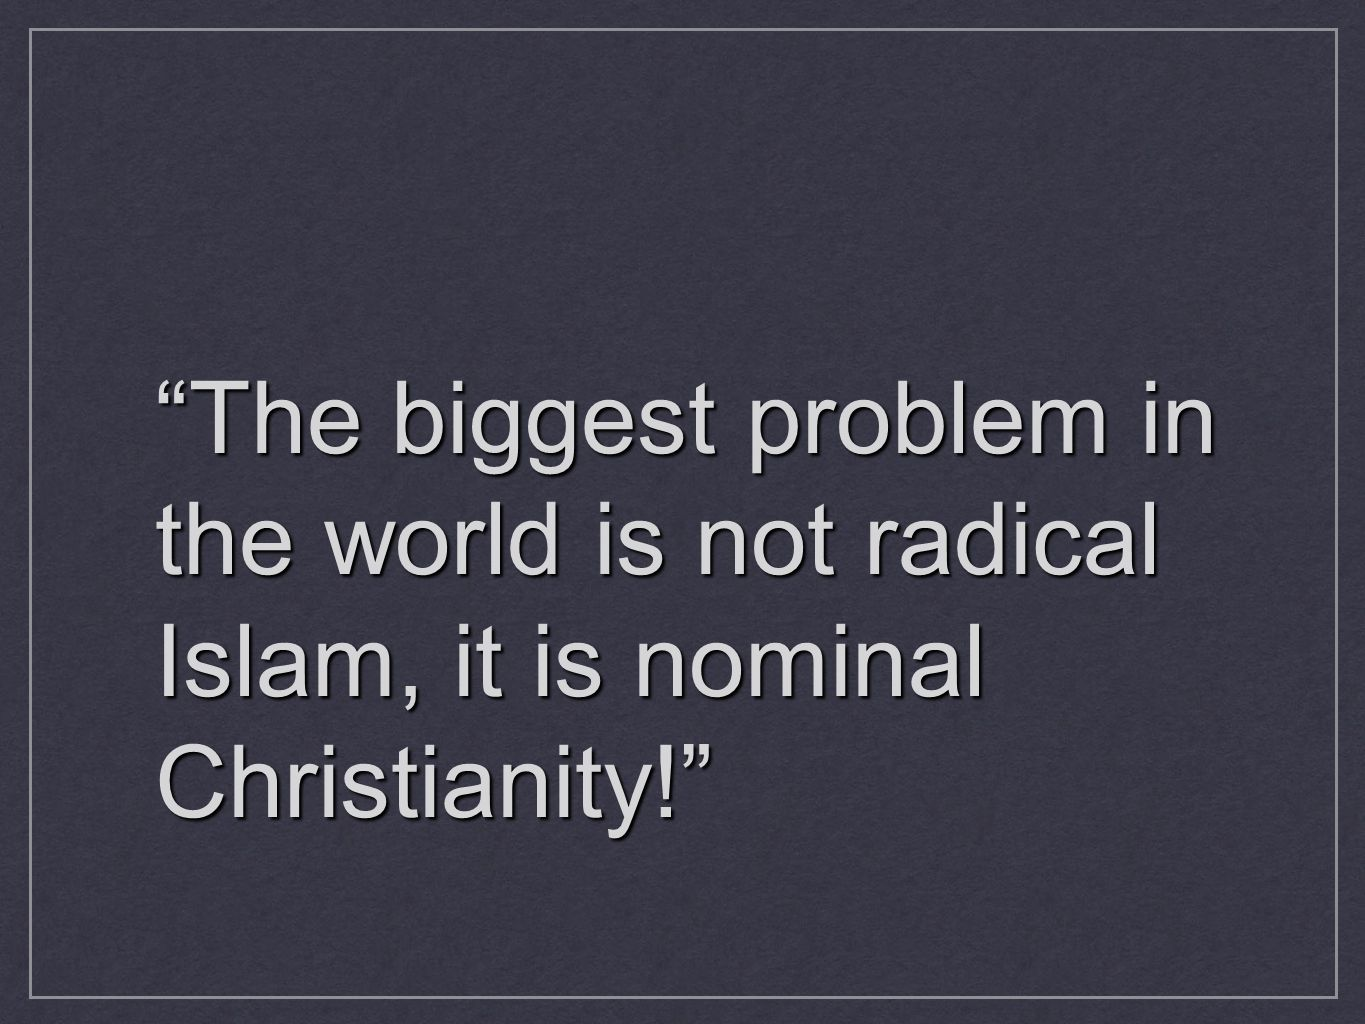 The biggest problem in the world is not radical Islam, it is nominal Christianity!